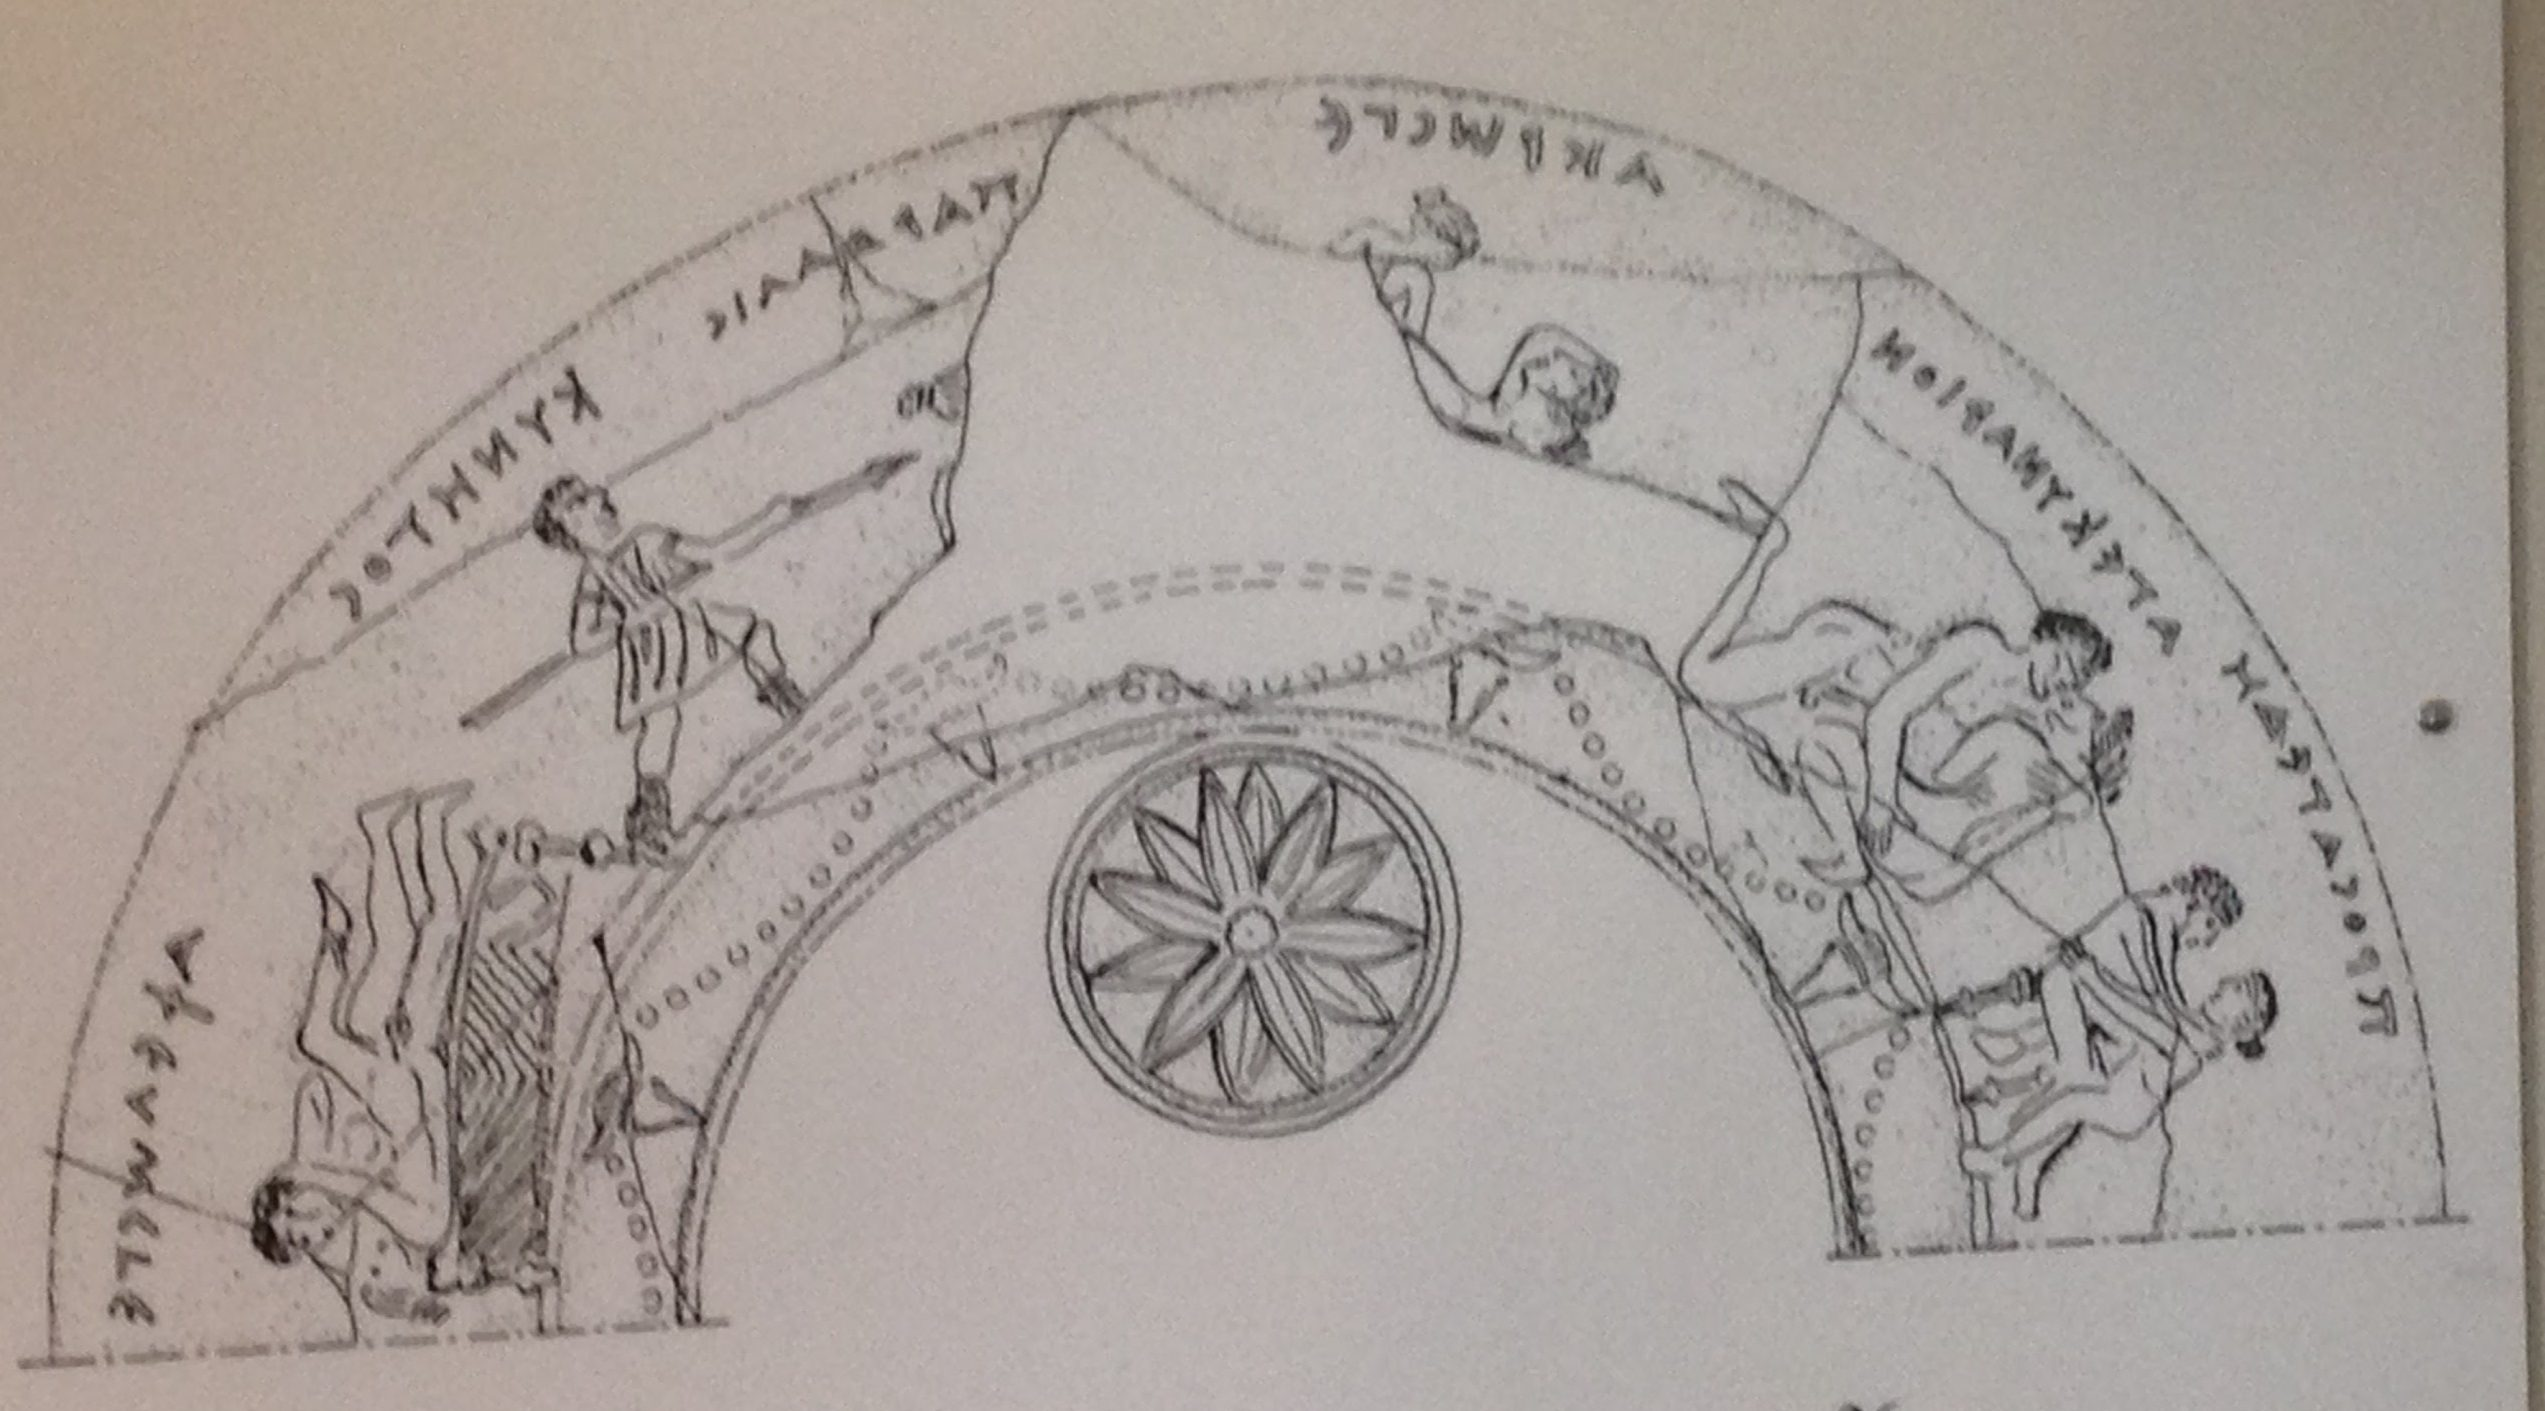 Drawing of the sex acts depicted on the inside of ancient Greek pottery from the museum at Pella, birthplace of Alexander the Great.